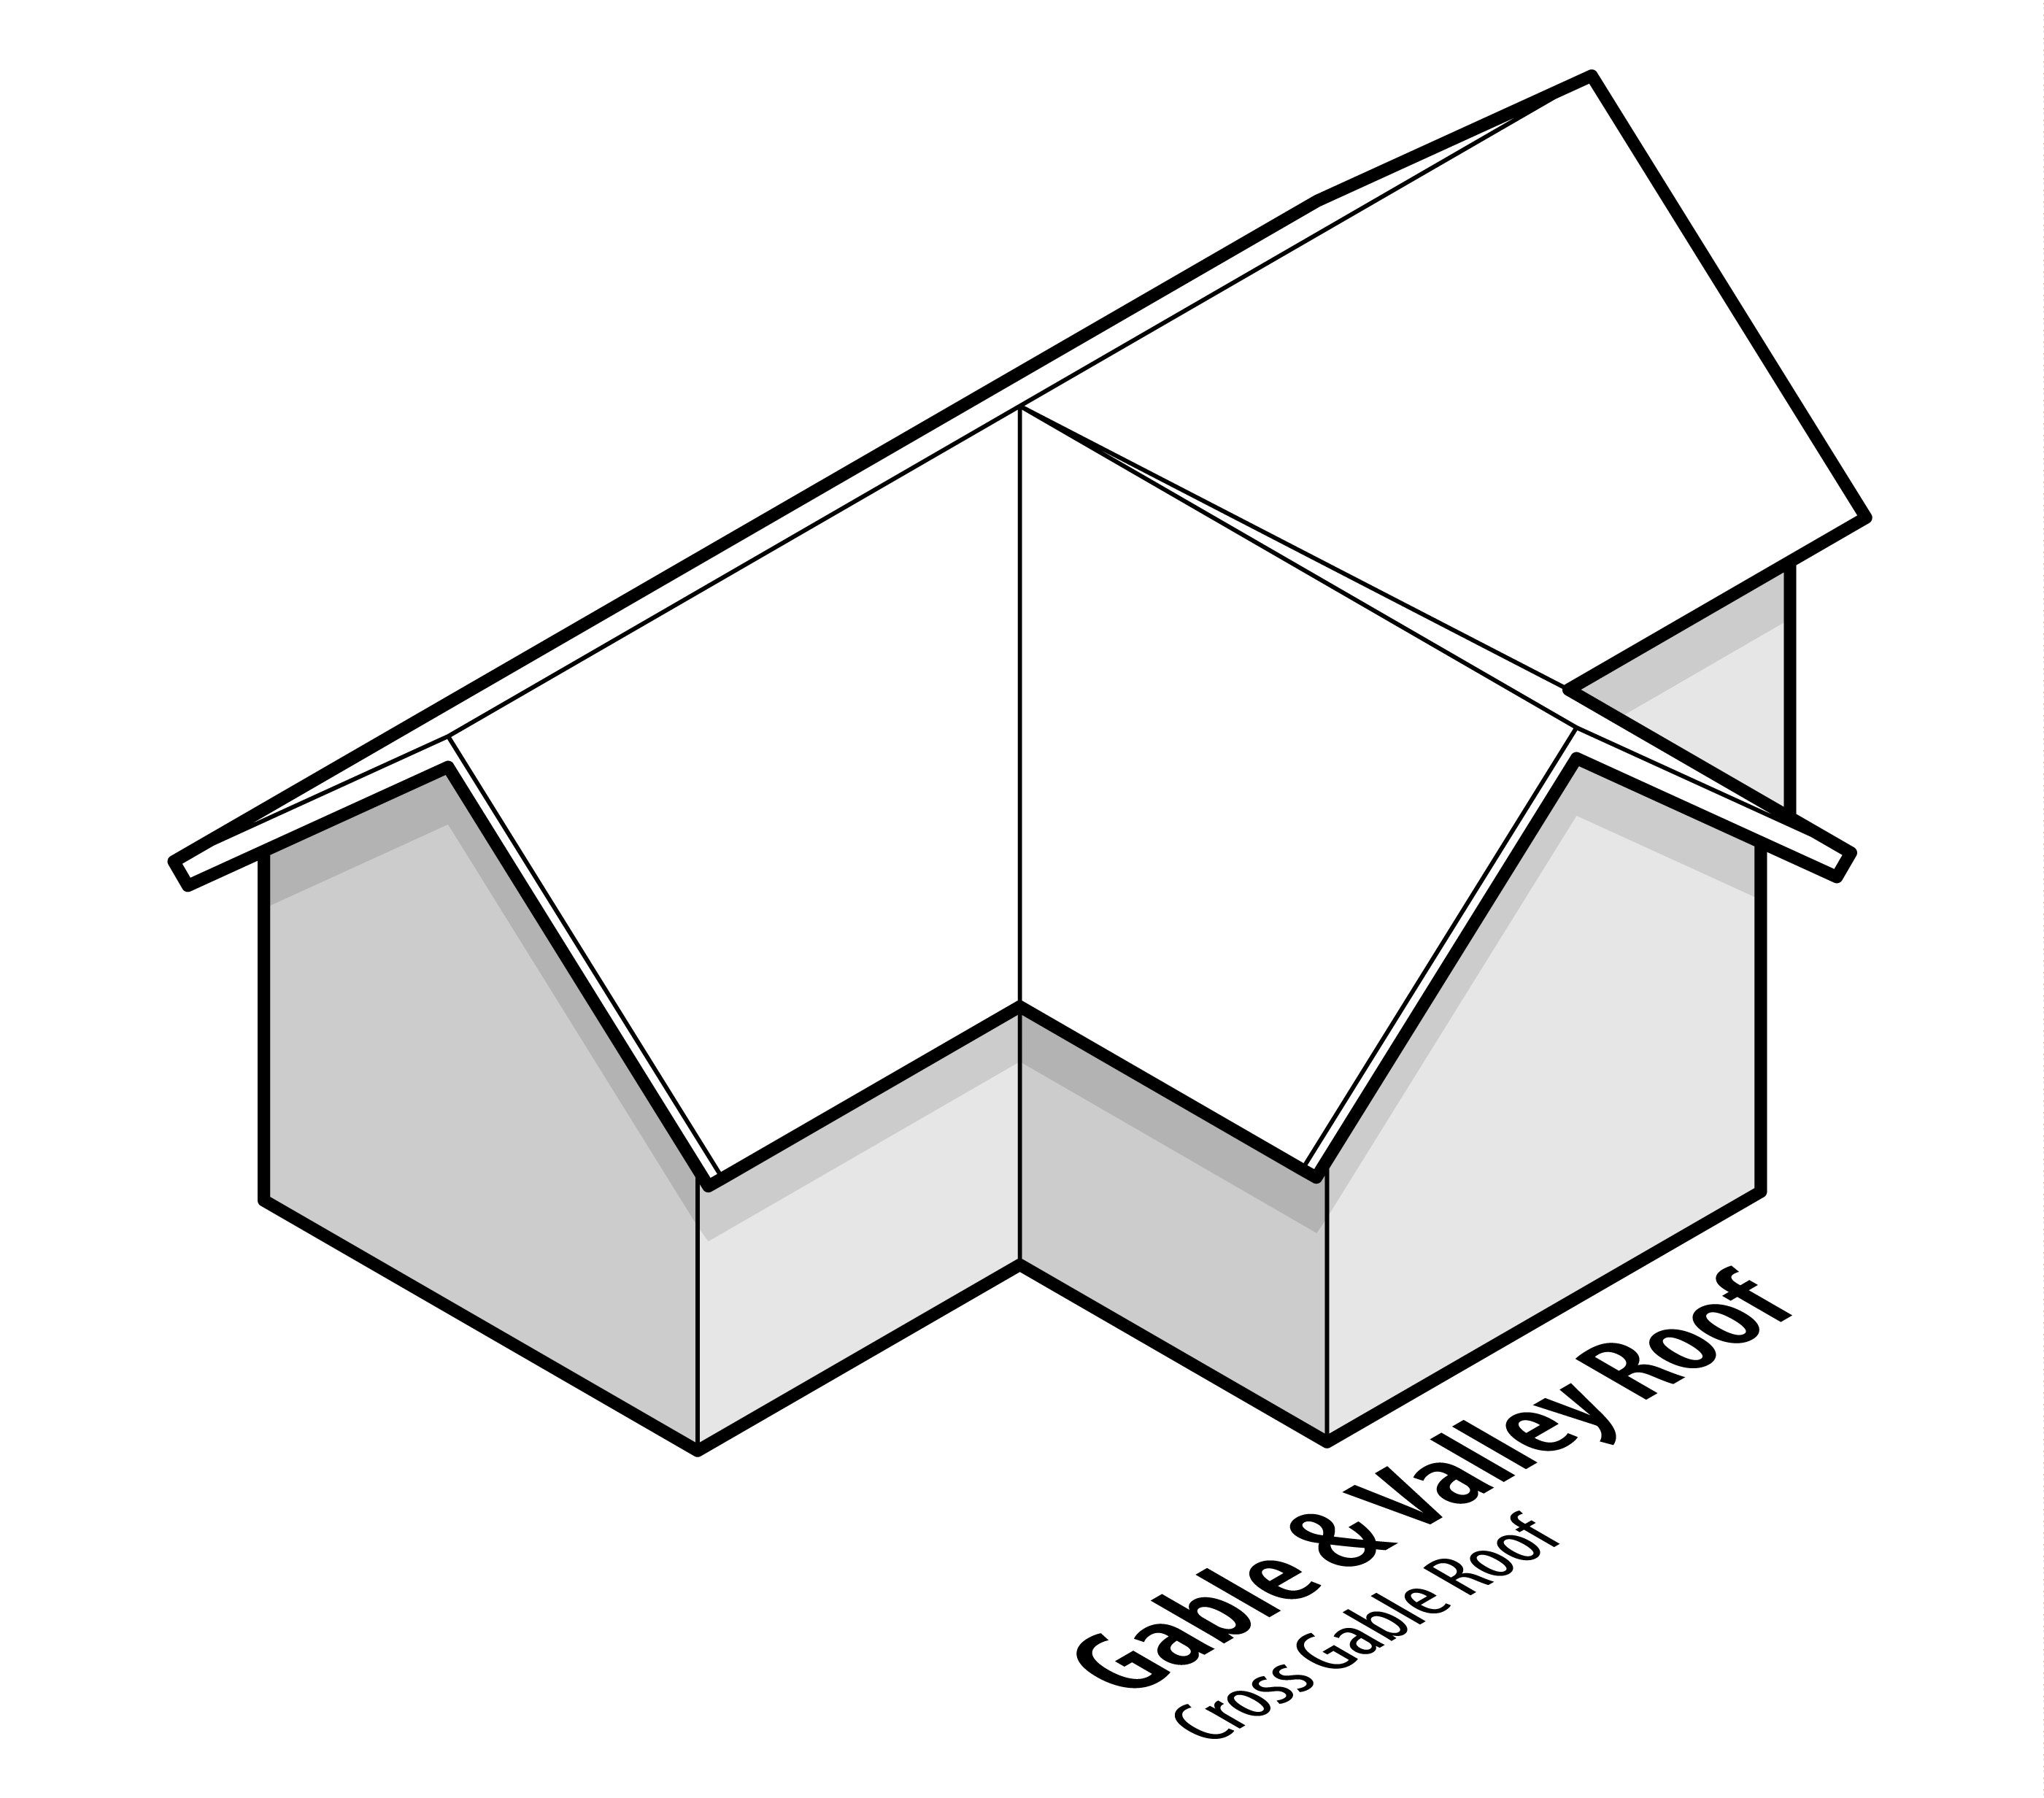 hight resolution of cross gable roof design